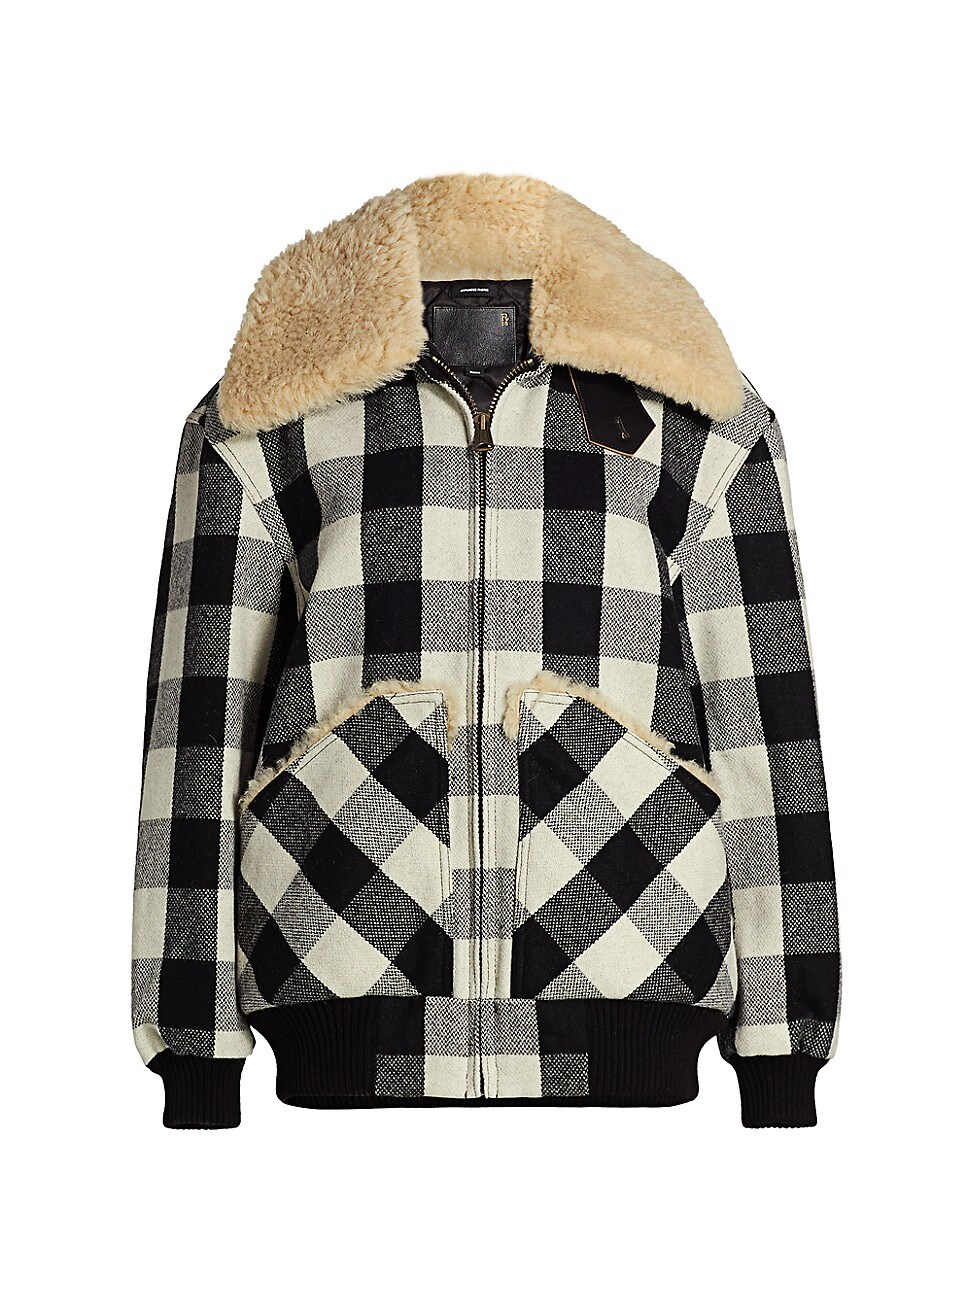 R13 WOMEN'S EXAGGERATED SHEARLING COLLAR PLAID BOMBER JACKET